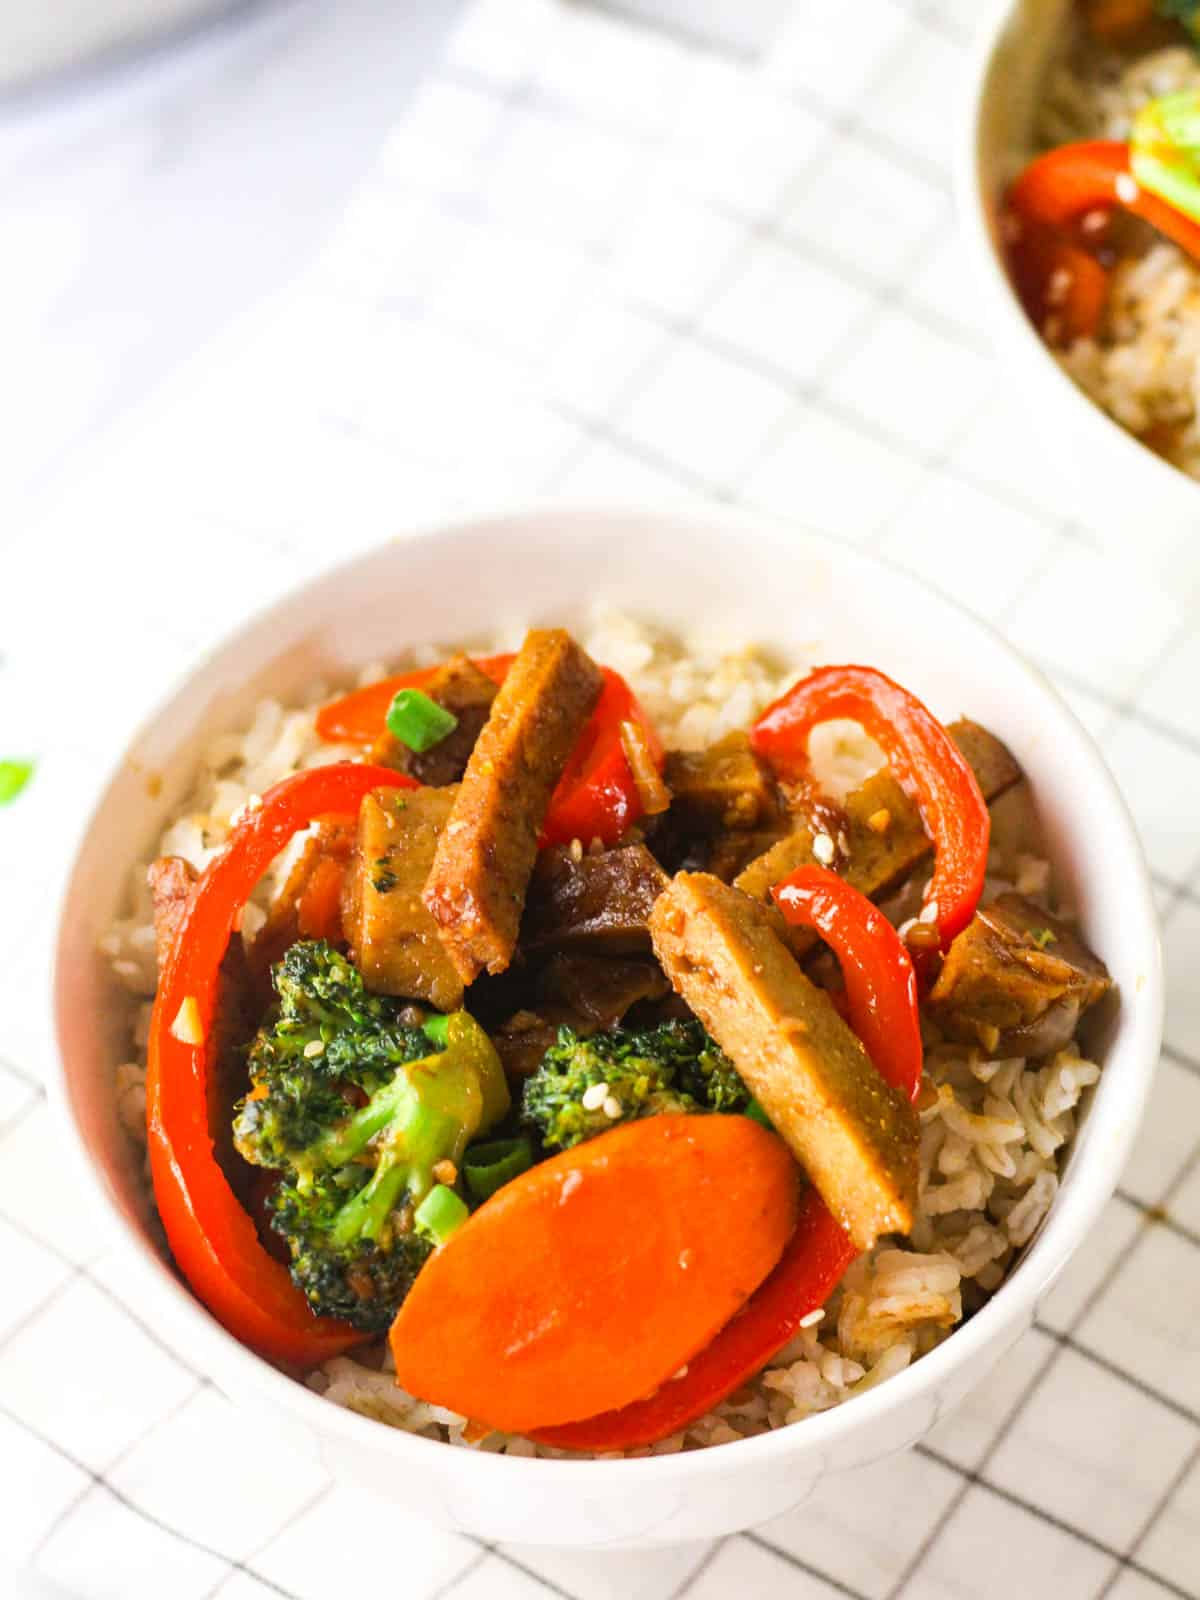 Chinese seitan stir-fry served on a bowl of rice.